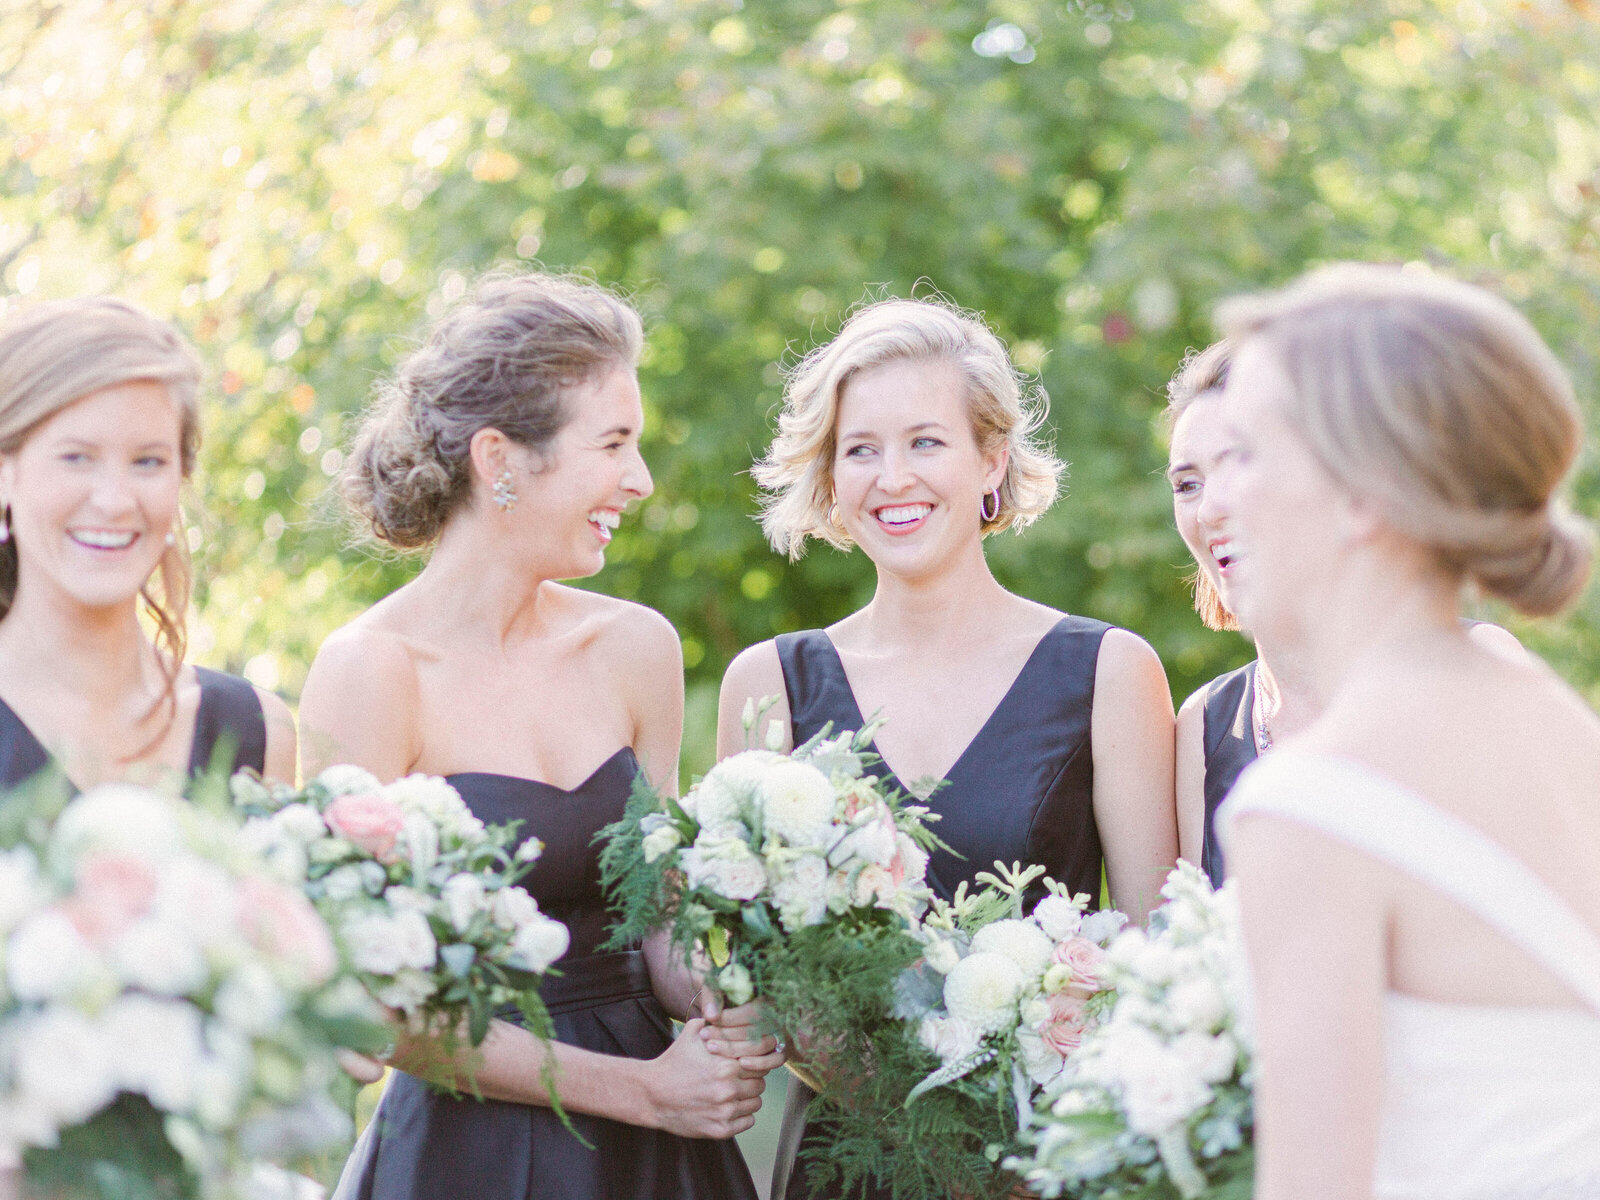 laughing bridesmaids with bouquets at wedding